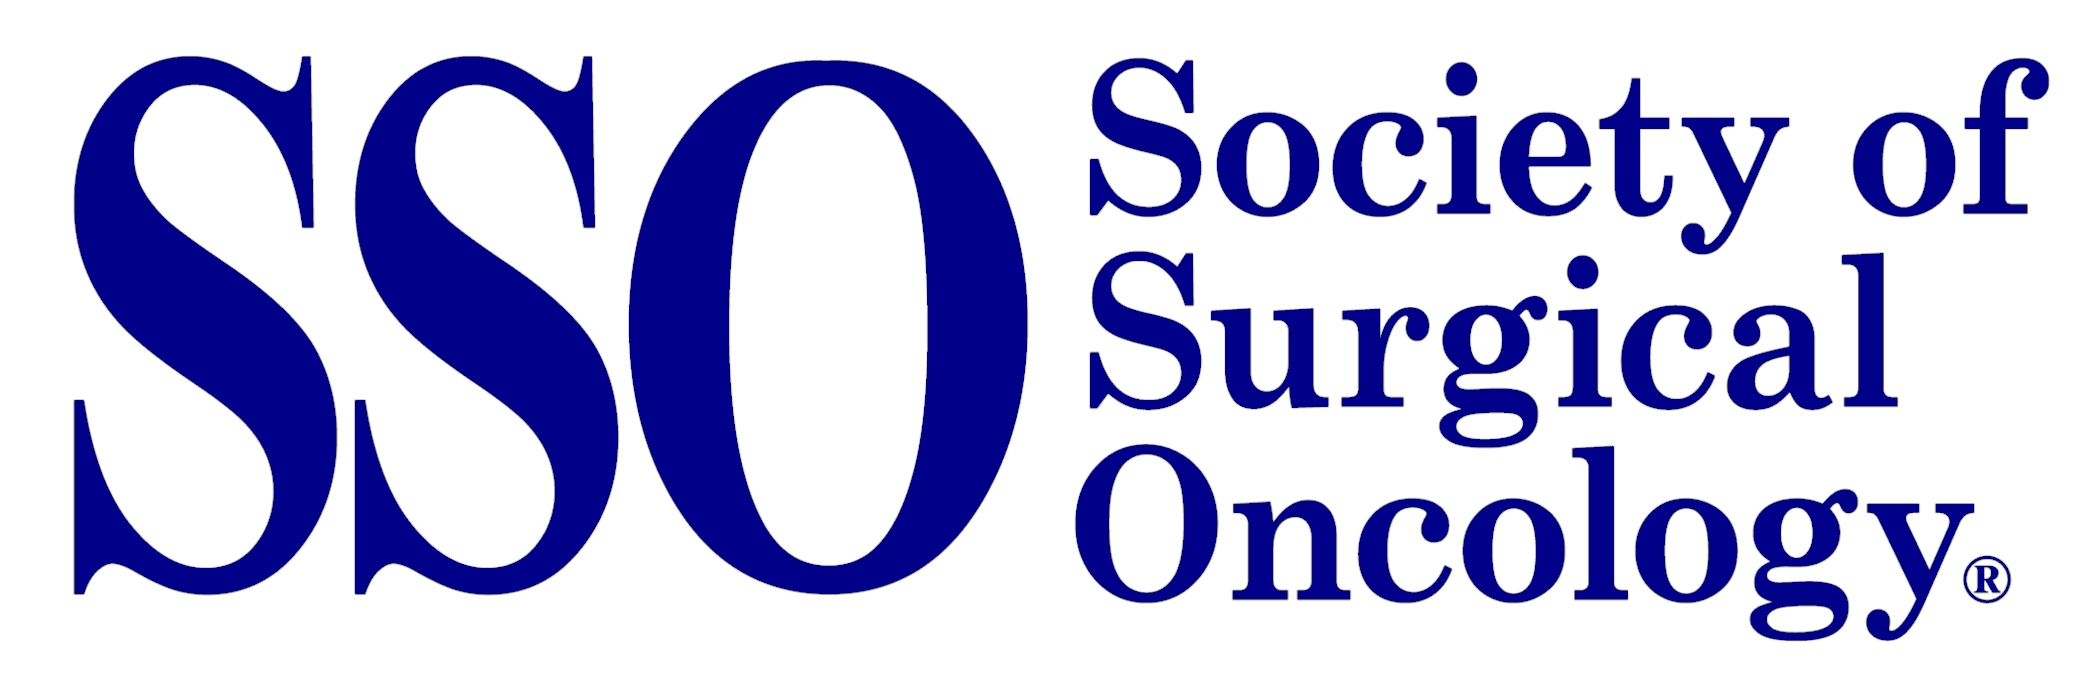 american society of clinical oncology asco 41st annual meeting Data from tarceva-tm- clinical trial program presented at american  made at the 41st annual meeting of the american society of  oncology is focused.